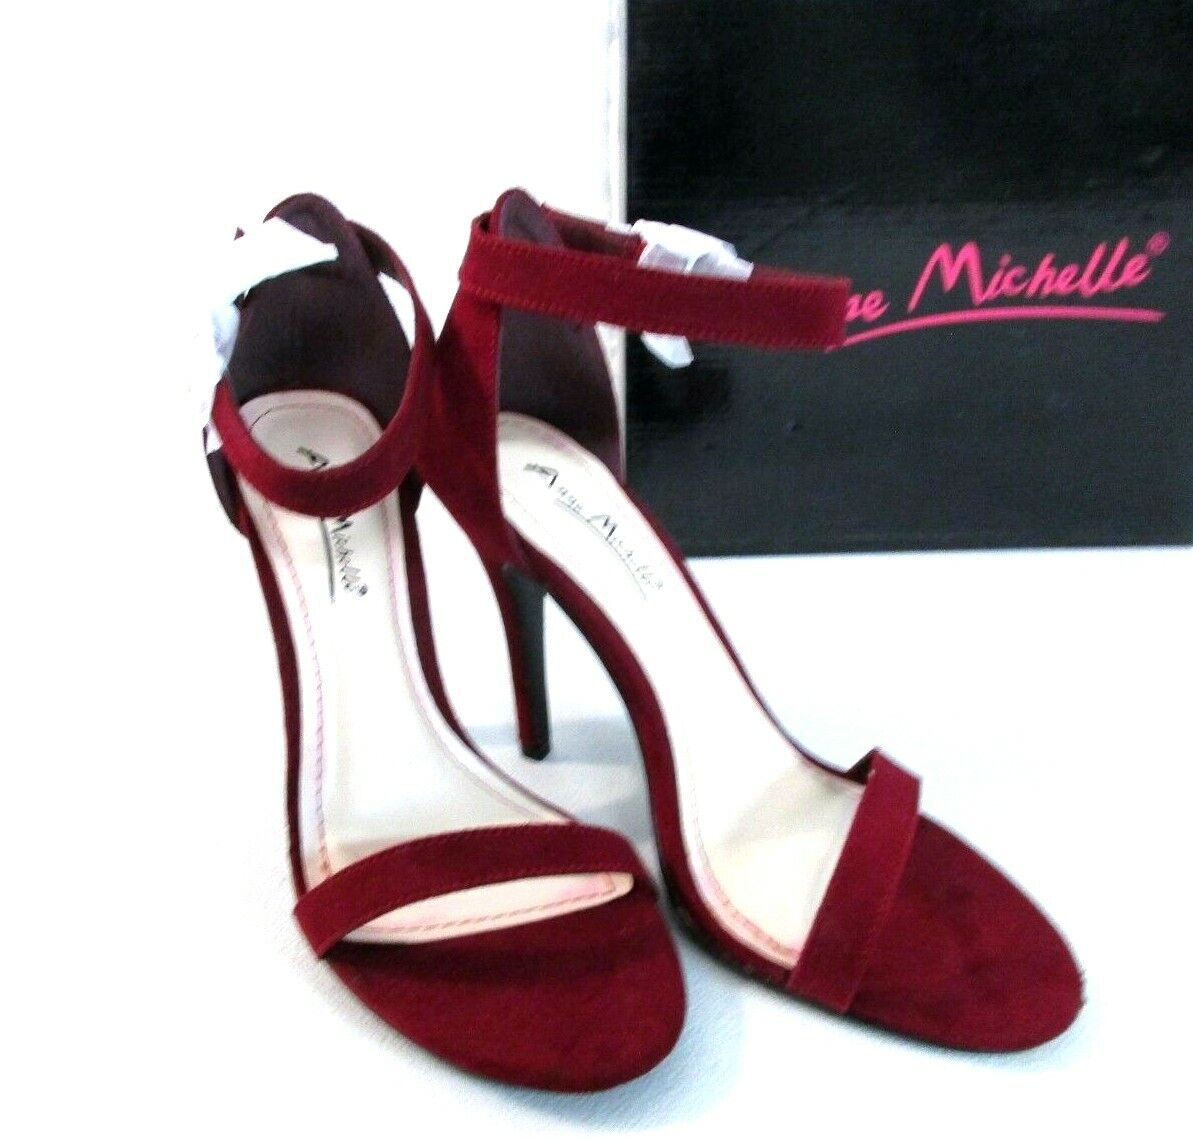 Anne Michelle Size 6 Burgundy Wine Dressy outing shoes 4 inch heels 173305 []